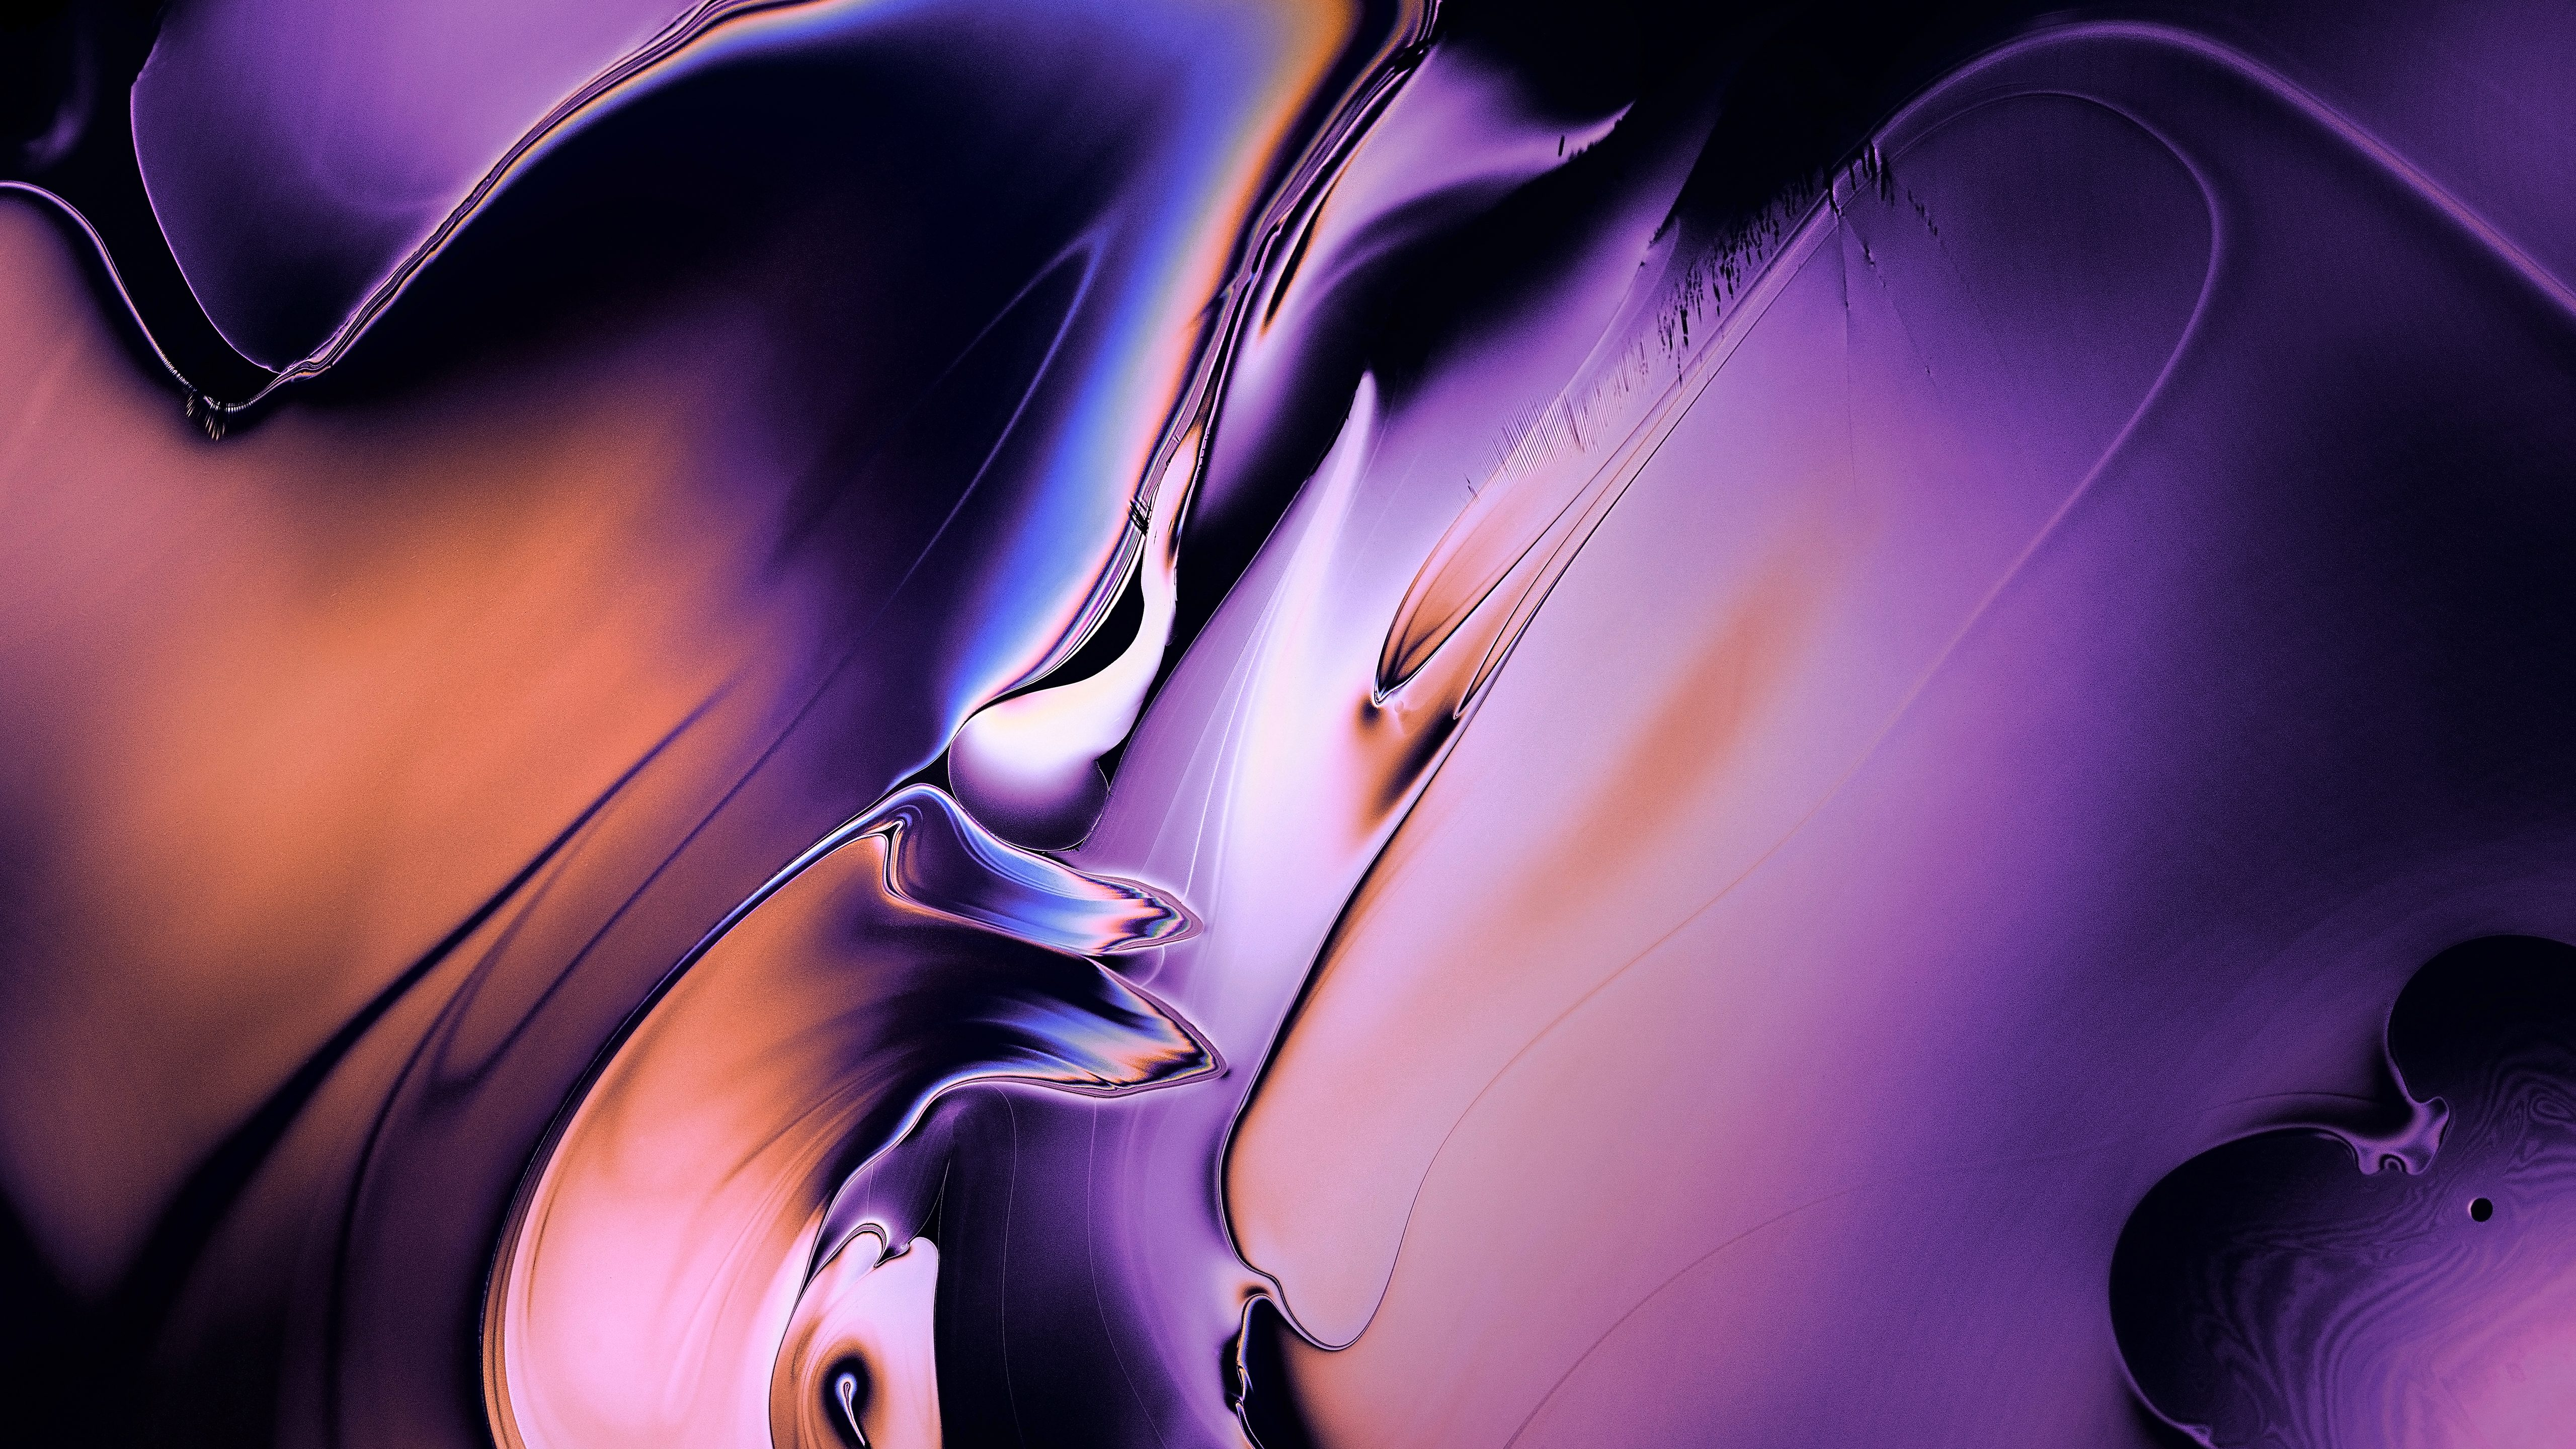 Dynamic Iphone X Wallpaper New Macos Mojave Wallpapers